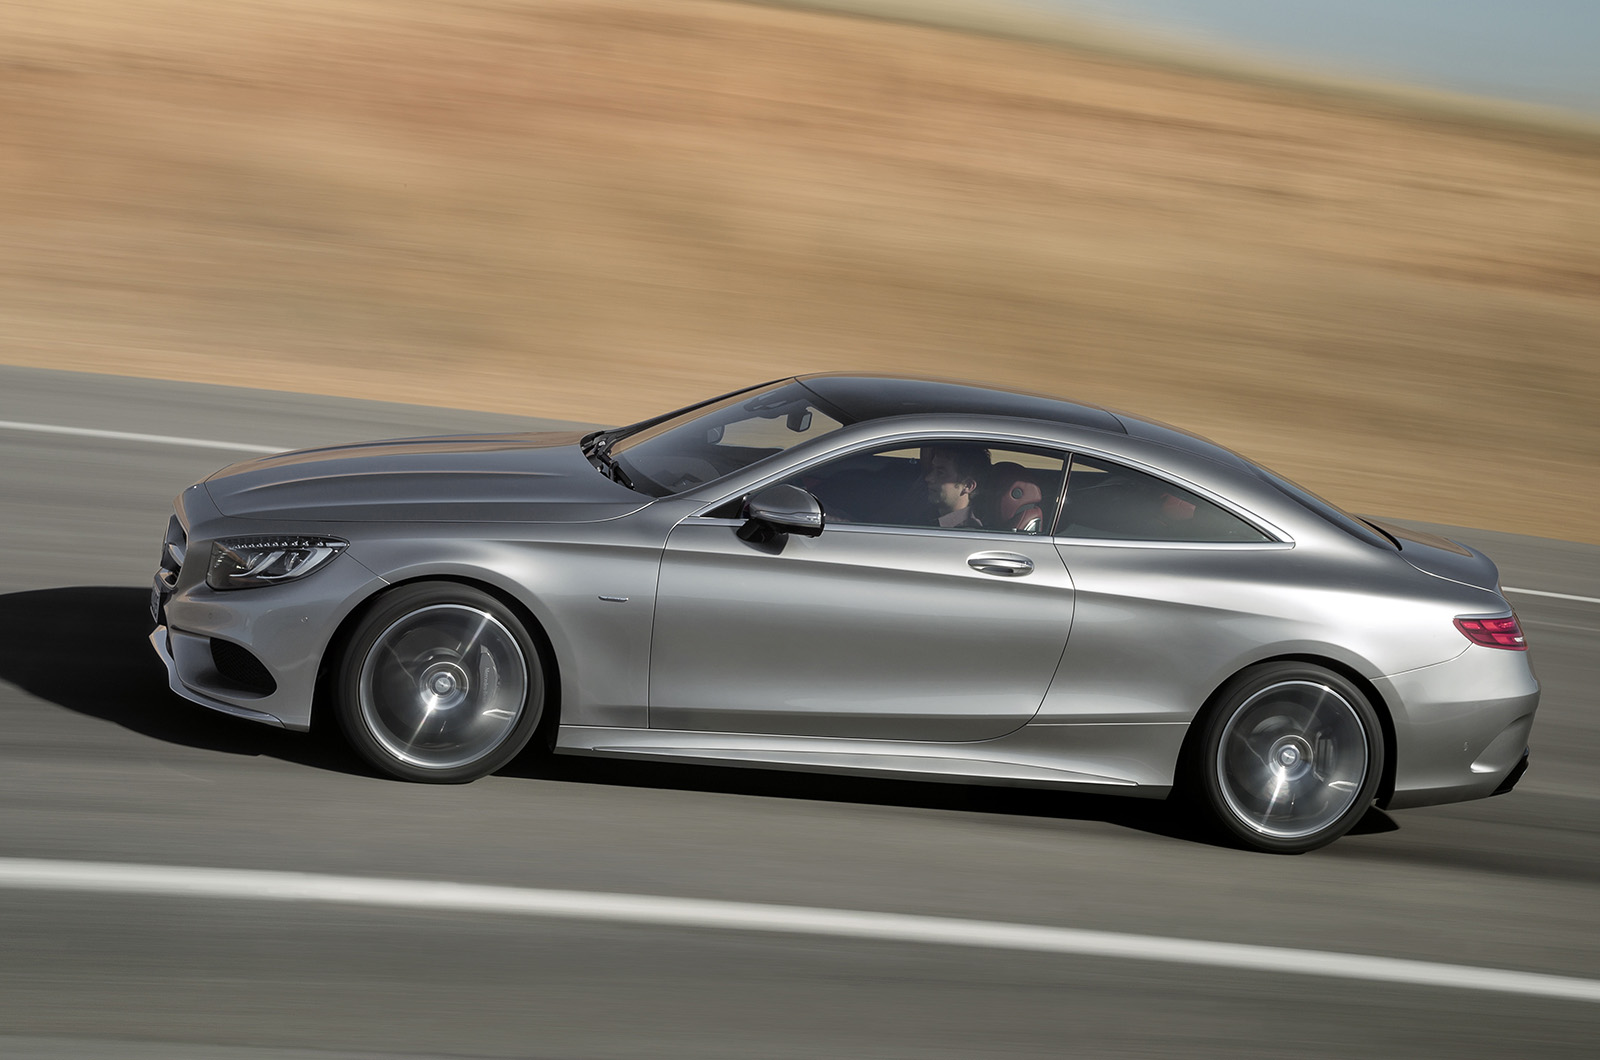 mercedes benz s500 coupe 4matic first drive. Black Bedroom Furniture Sets. Home Design Ideas